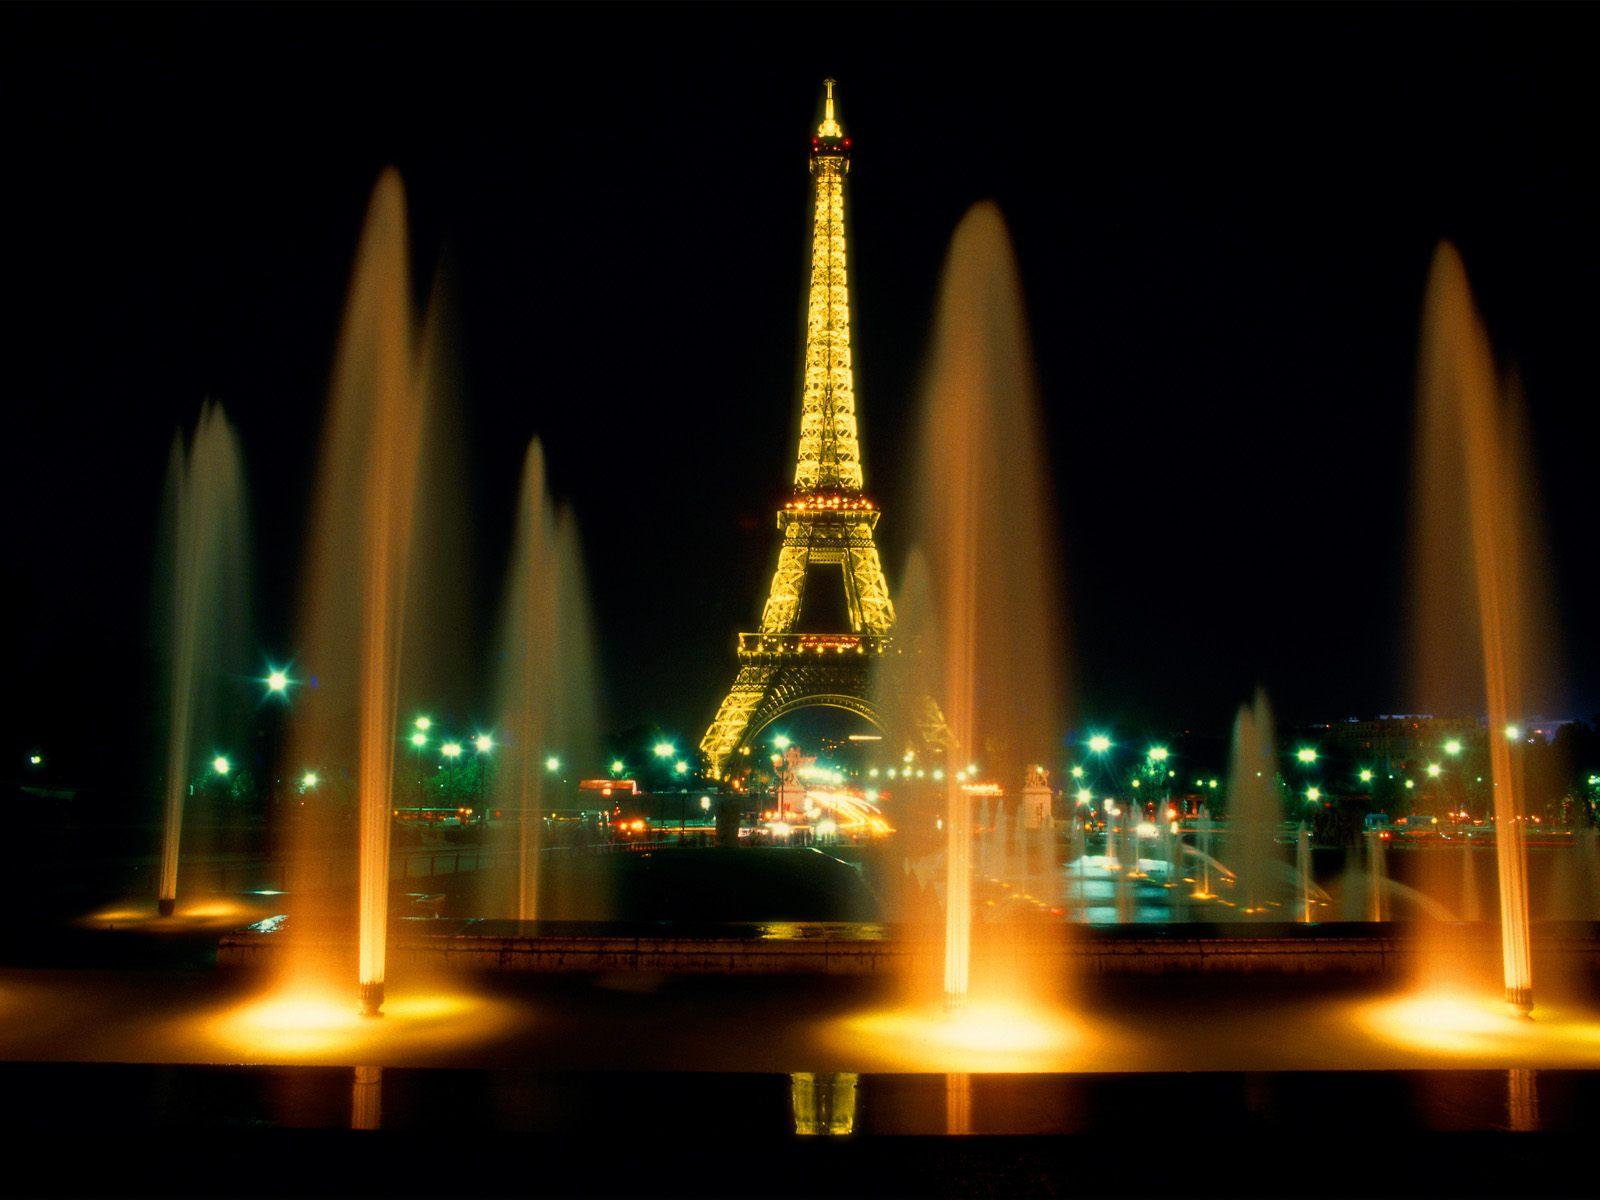 France Is One Of The Majority Favorite Most Visited And Accepted Countries For Certain Among Must To See Places Travelers